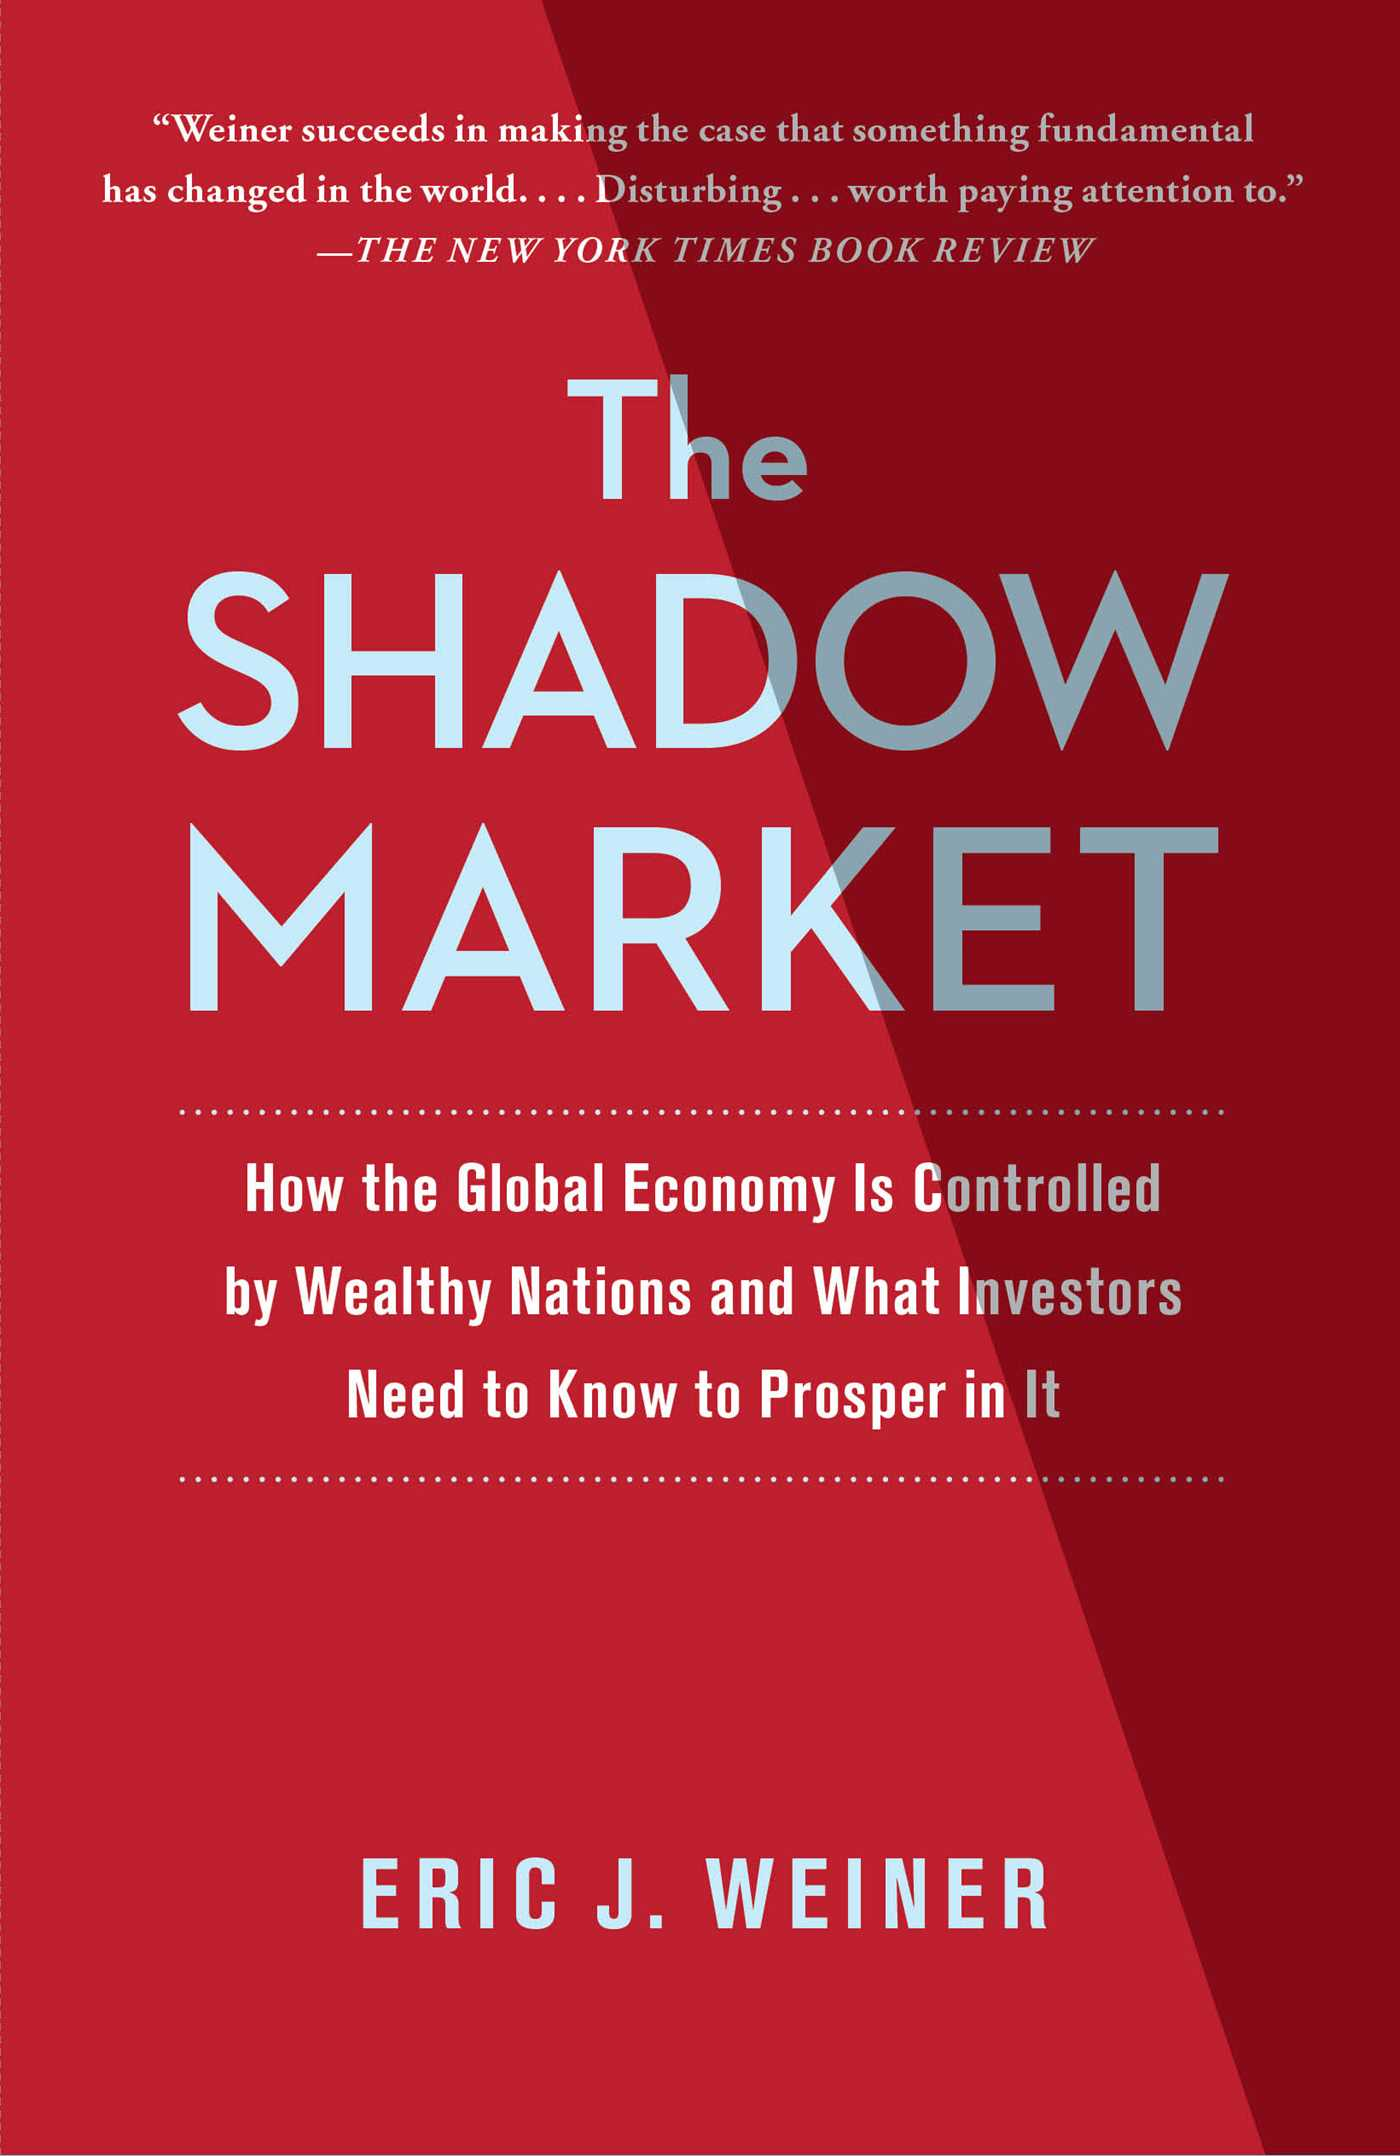 The shadow market 9781439121313 hr